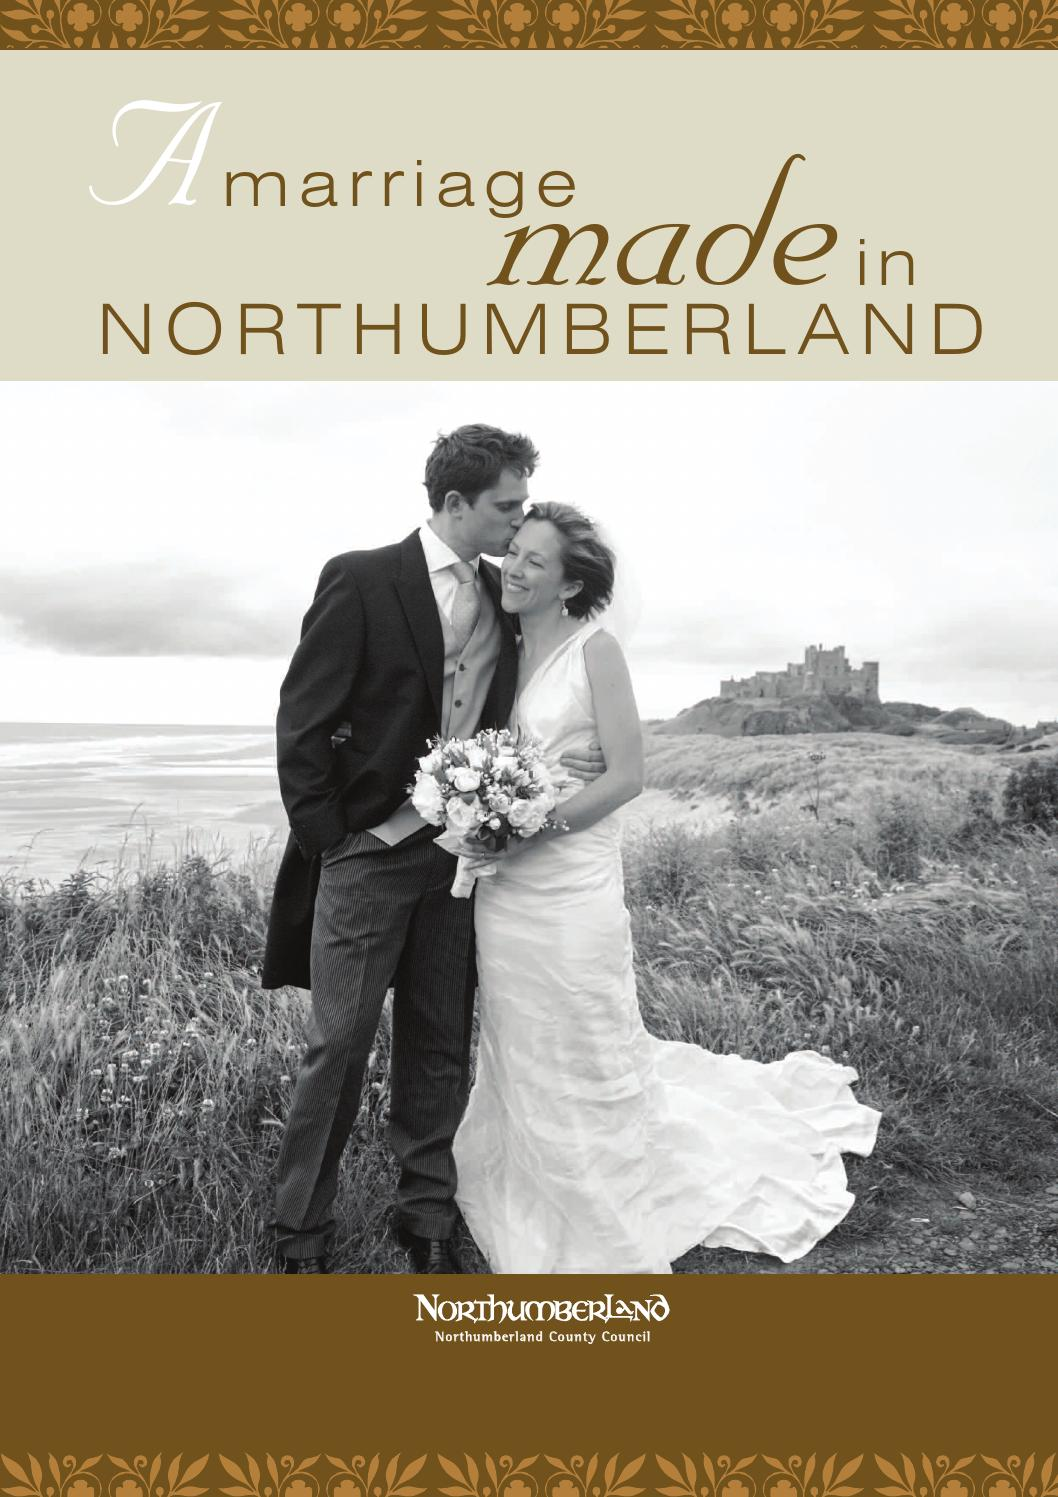 Wedding Brochure By Northumberland County Council